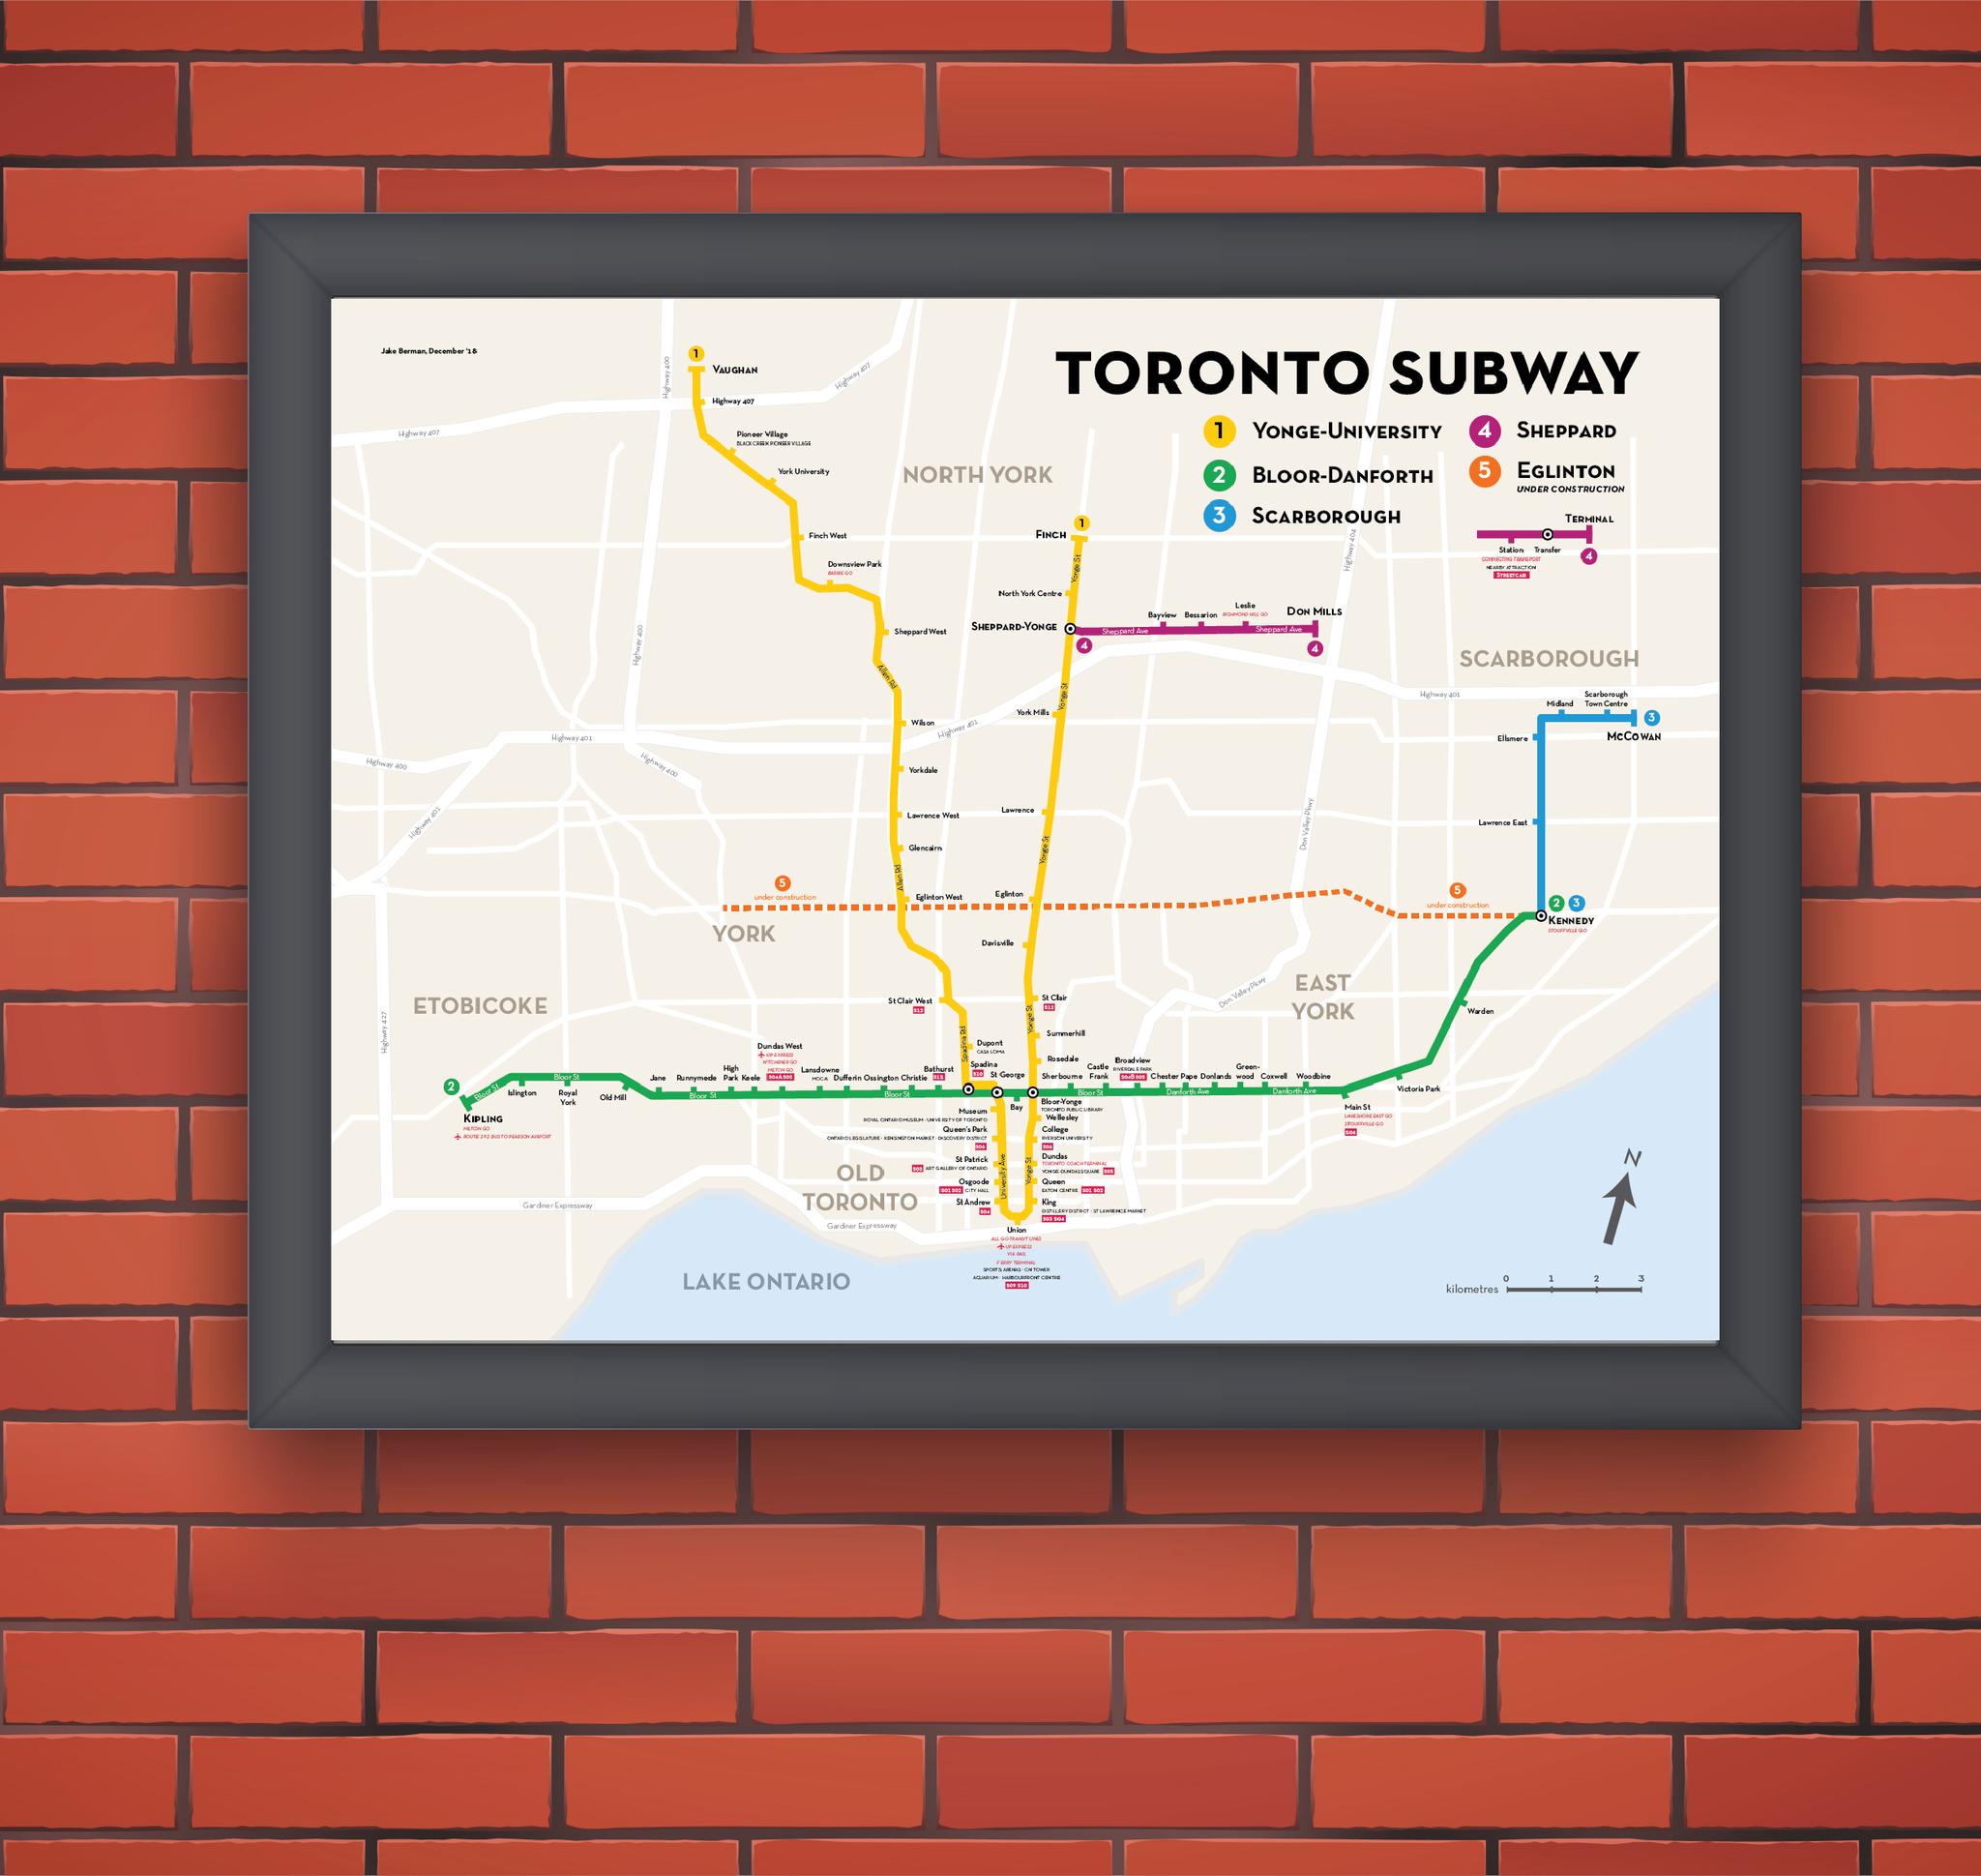 Toronto Subway Map Print.Toronto Subway Map Print Fifty Three Studio